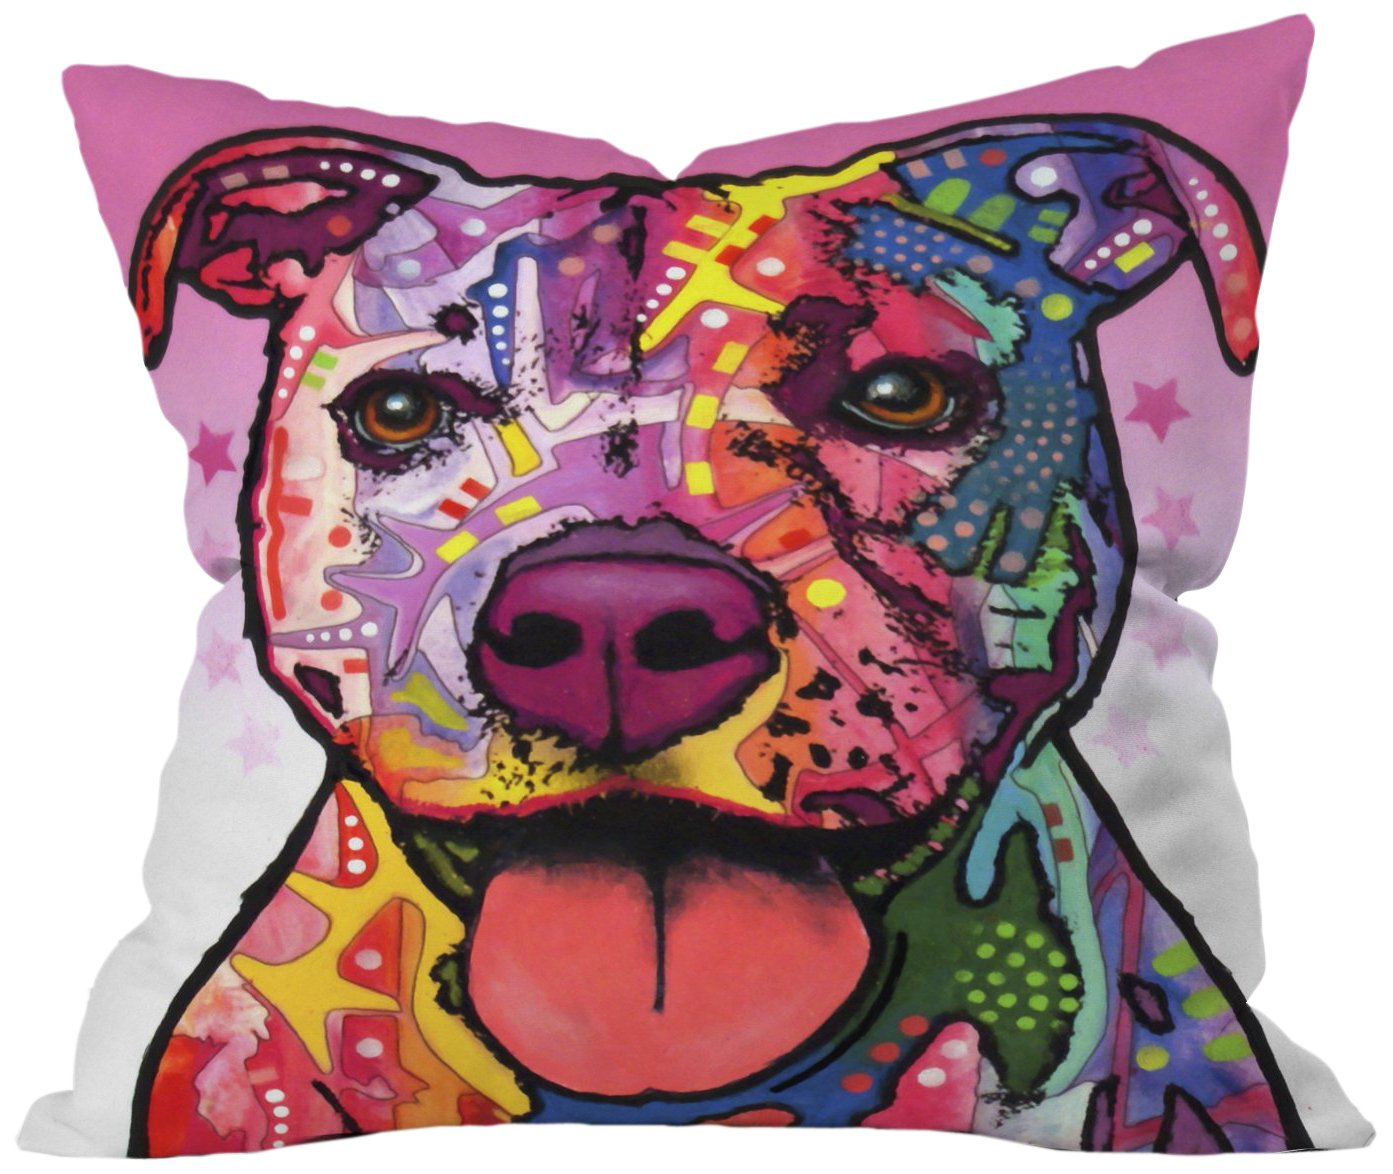 DENY Designs Dean Russo Cherish The Pitbull Throw Pillow, 20 by 20-Inch